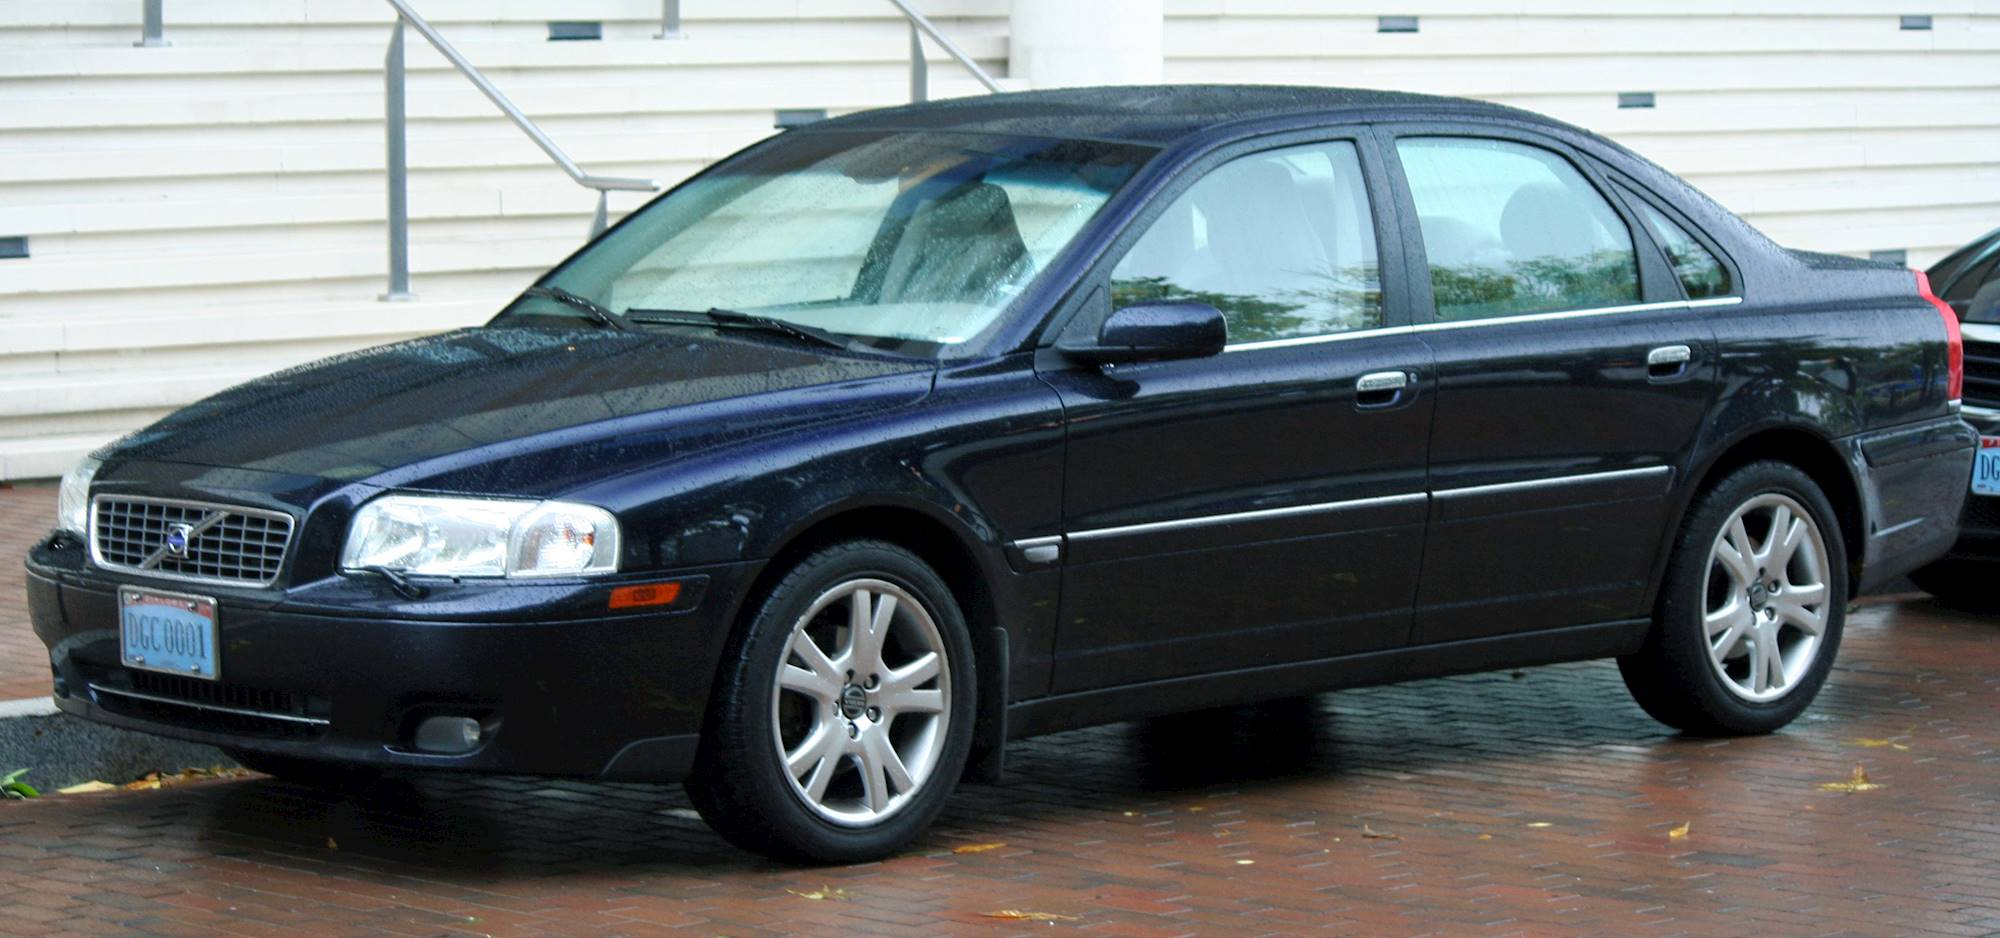 hight resolution of 2004 volvo s80 2004 volvo s80